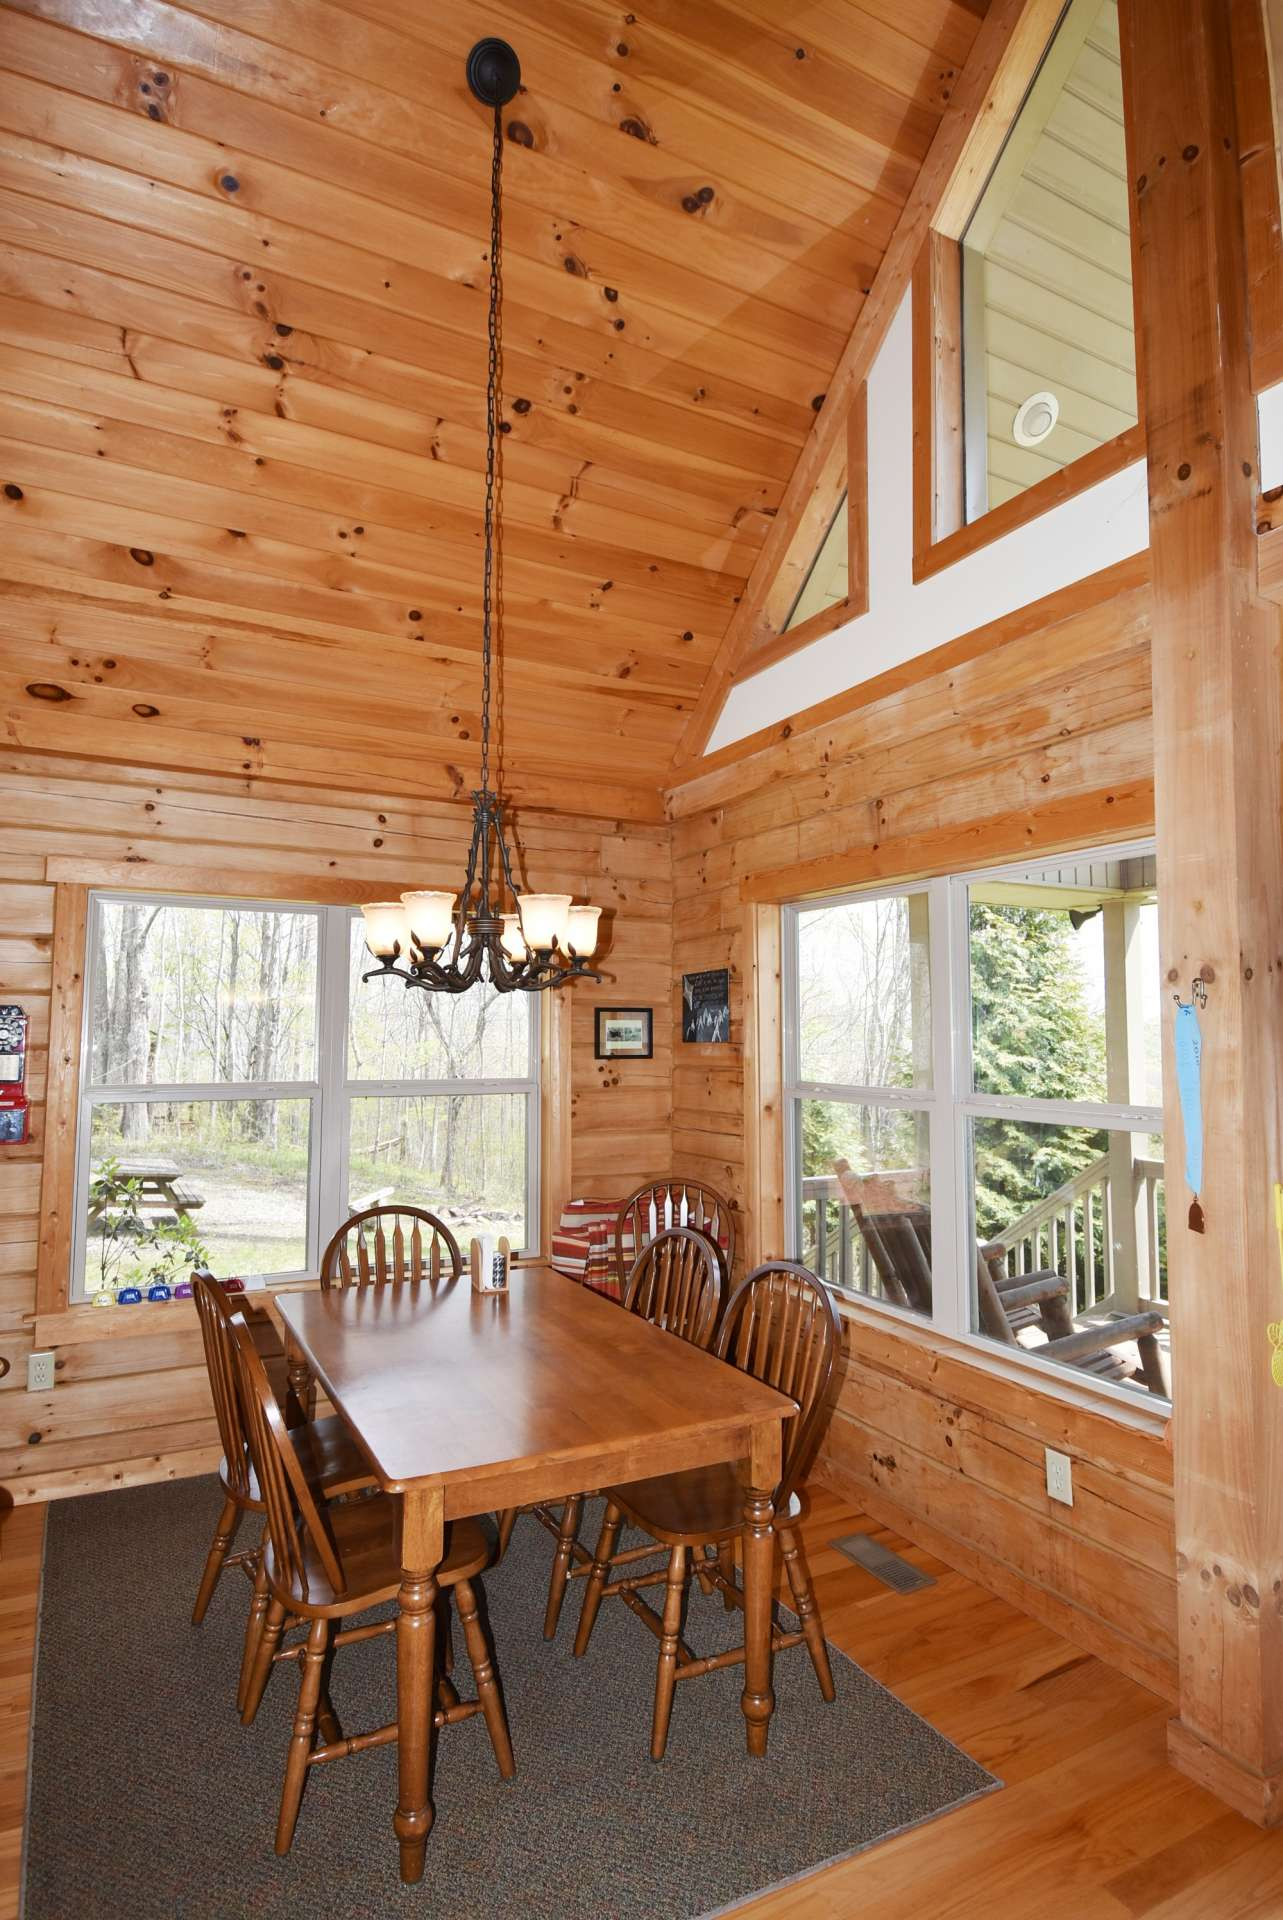 The vaulted formal dining area  embraces the outdoor scenery and views while dining inside.